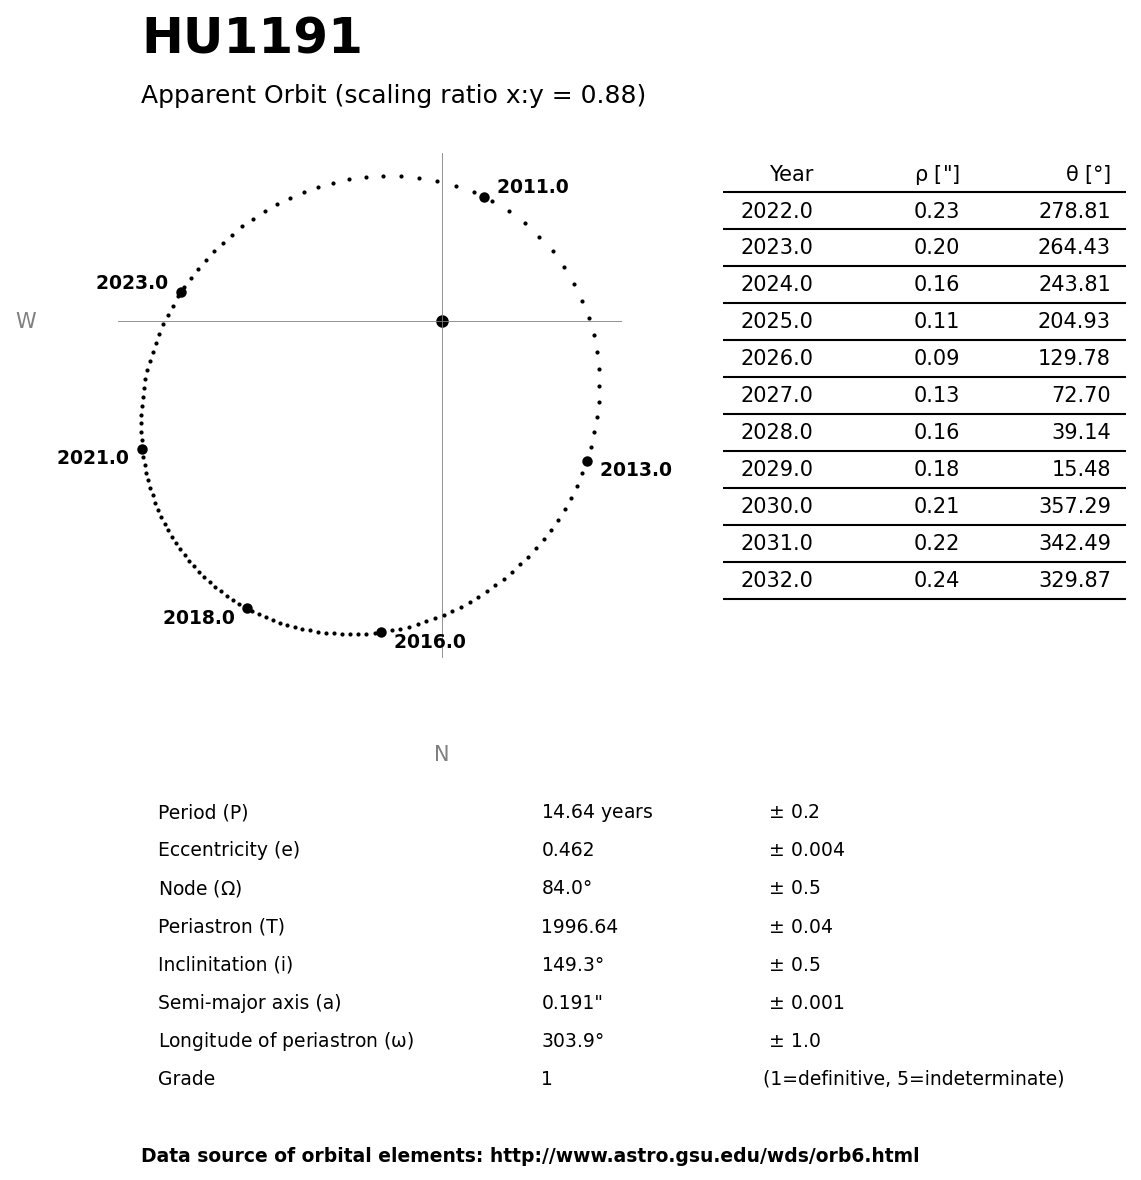 ../images/binary-star-orbits/HU1191-orbit.jpg